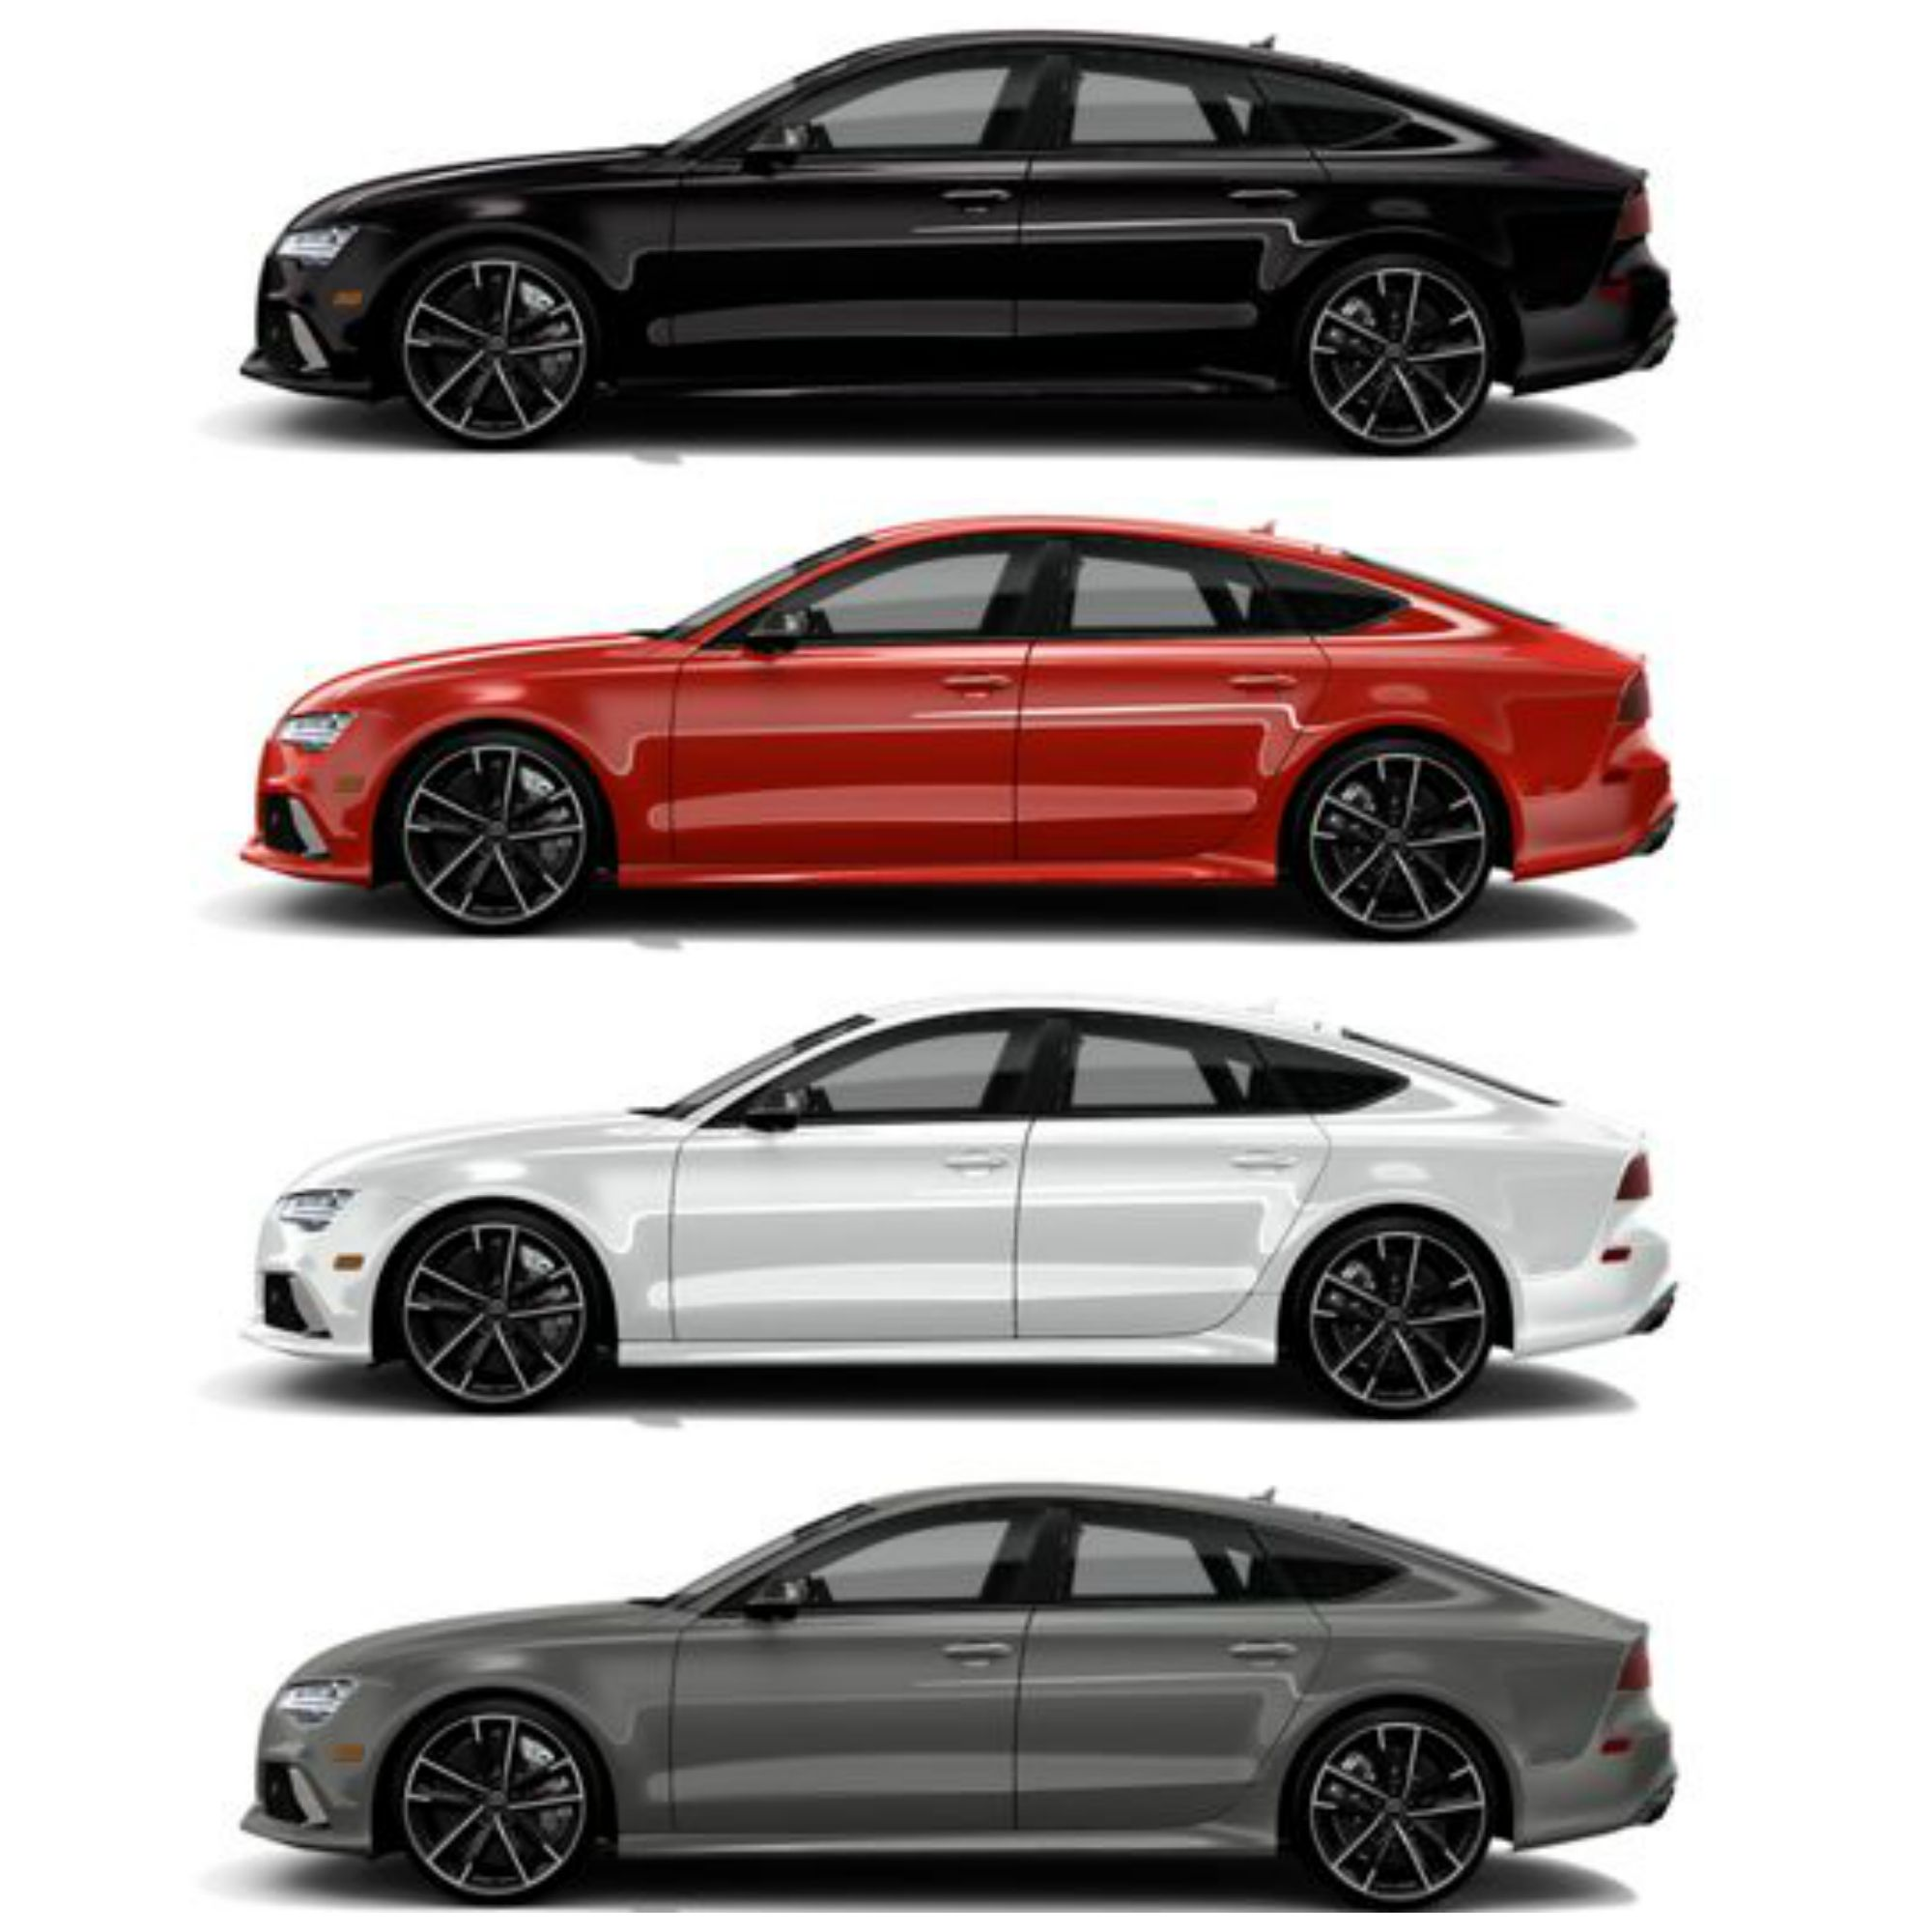 When It Comes To The Audi RS 7 Performance, There Is No